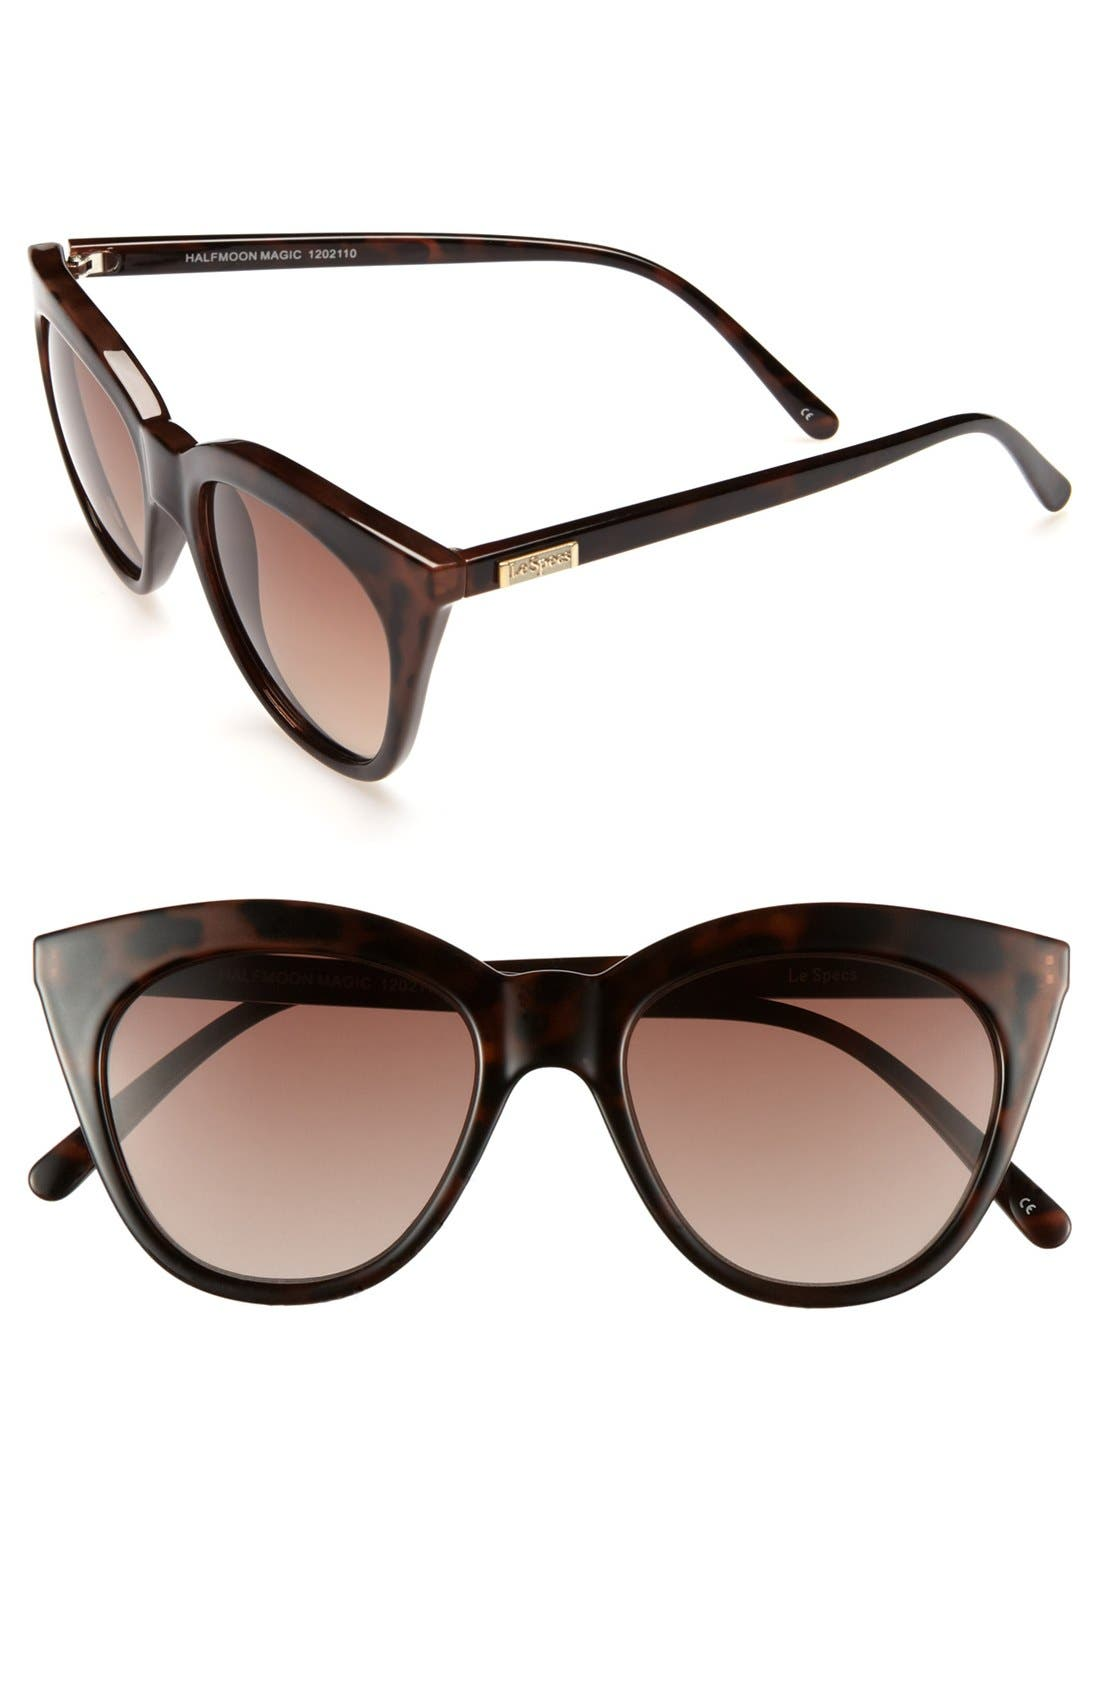 Alternate Image 1 Selected - Le Specs 'Halfmoon Magic' Sunglasses